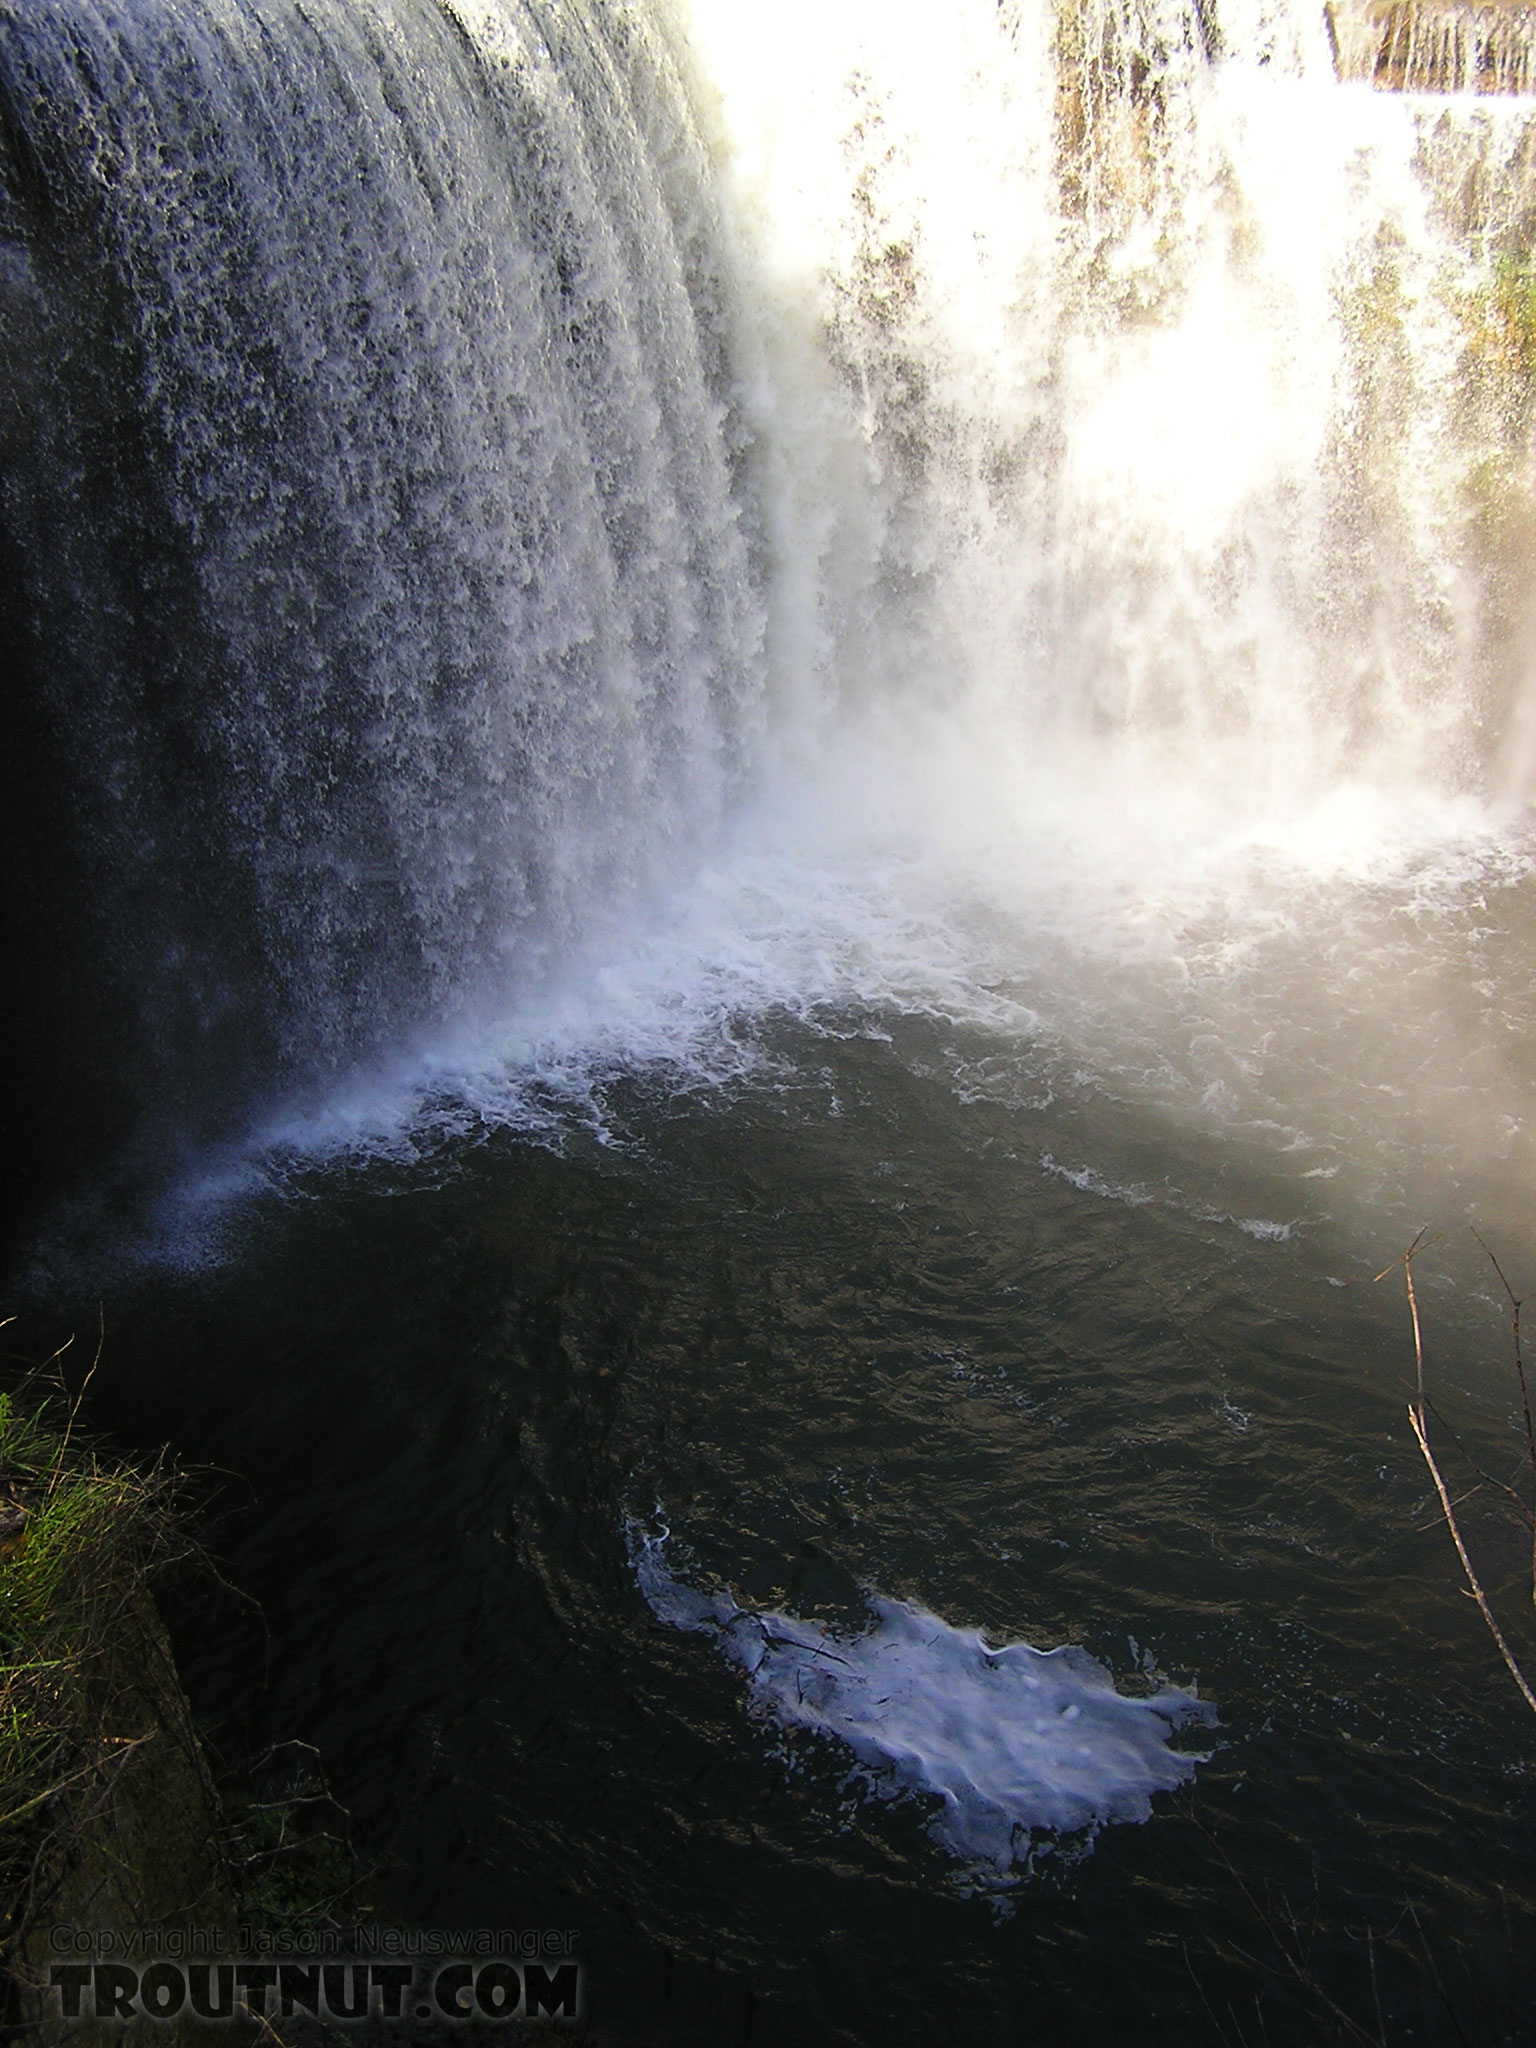 Many Finger Lakes tributaries have impressive waterfalls, but this is one of the best.  The plunge pool is extremely deep and often holds nice fish. From Salmon Creek, Ludlowville Falls in New York.